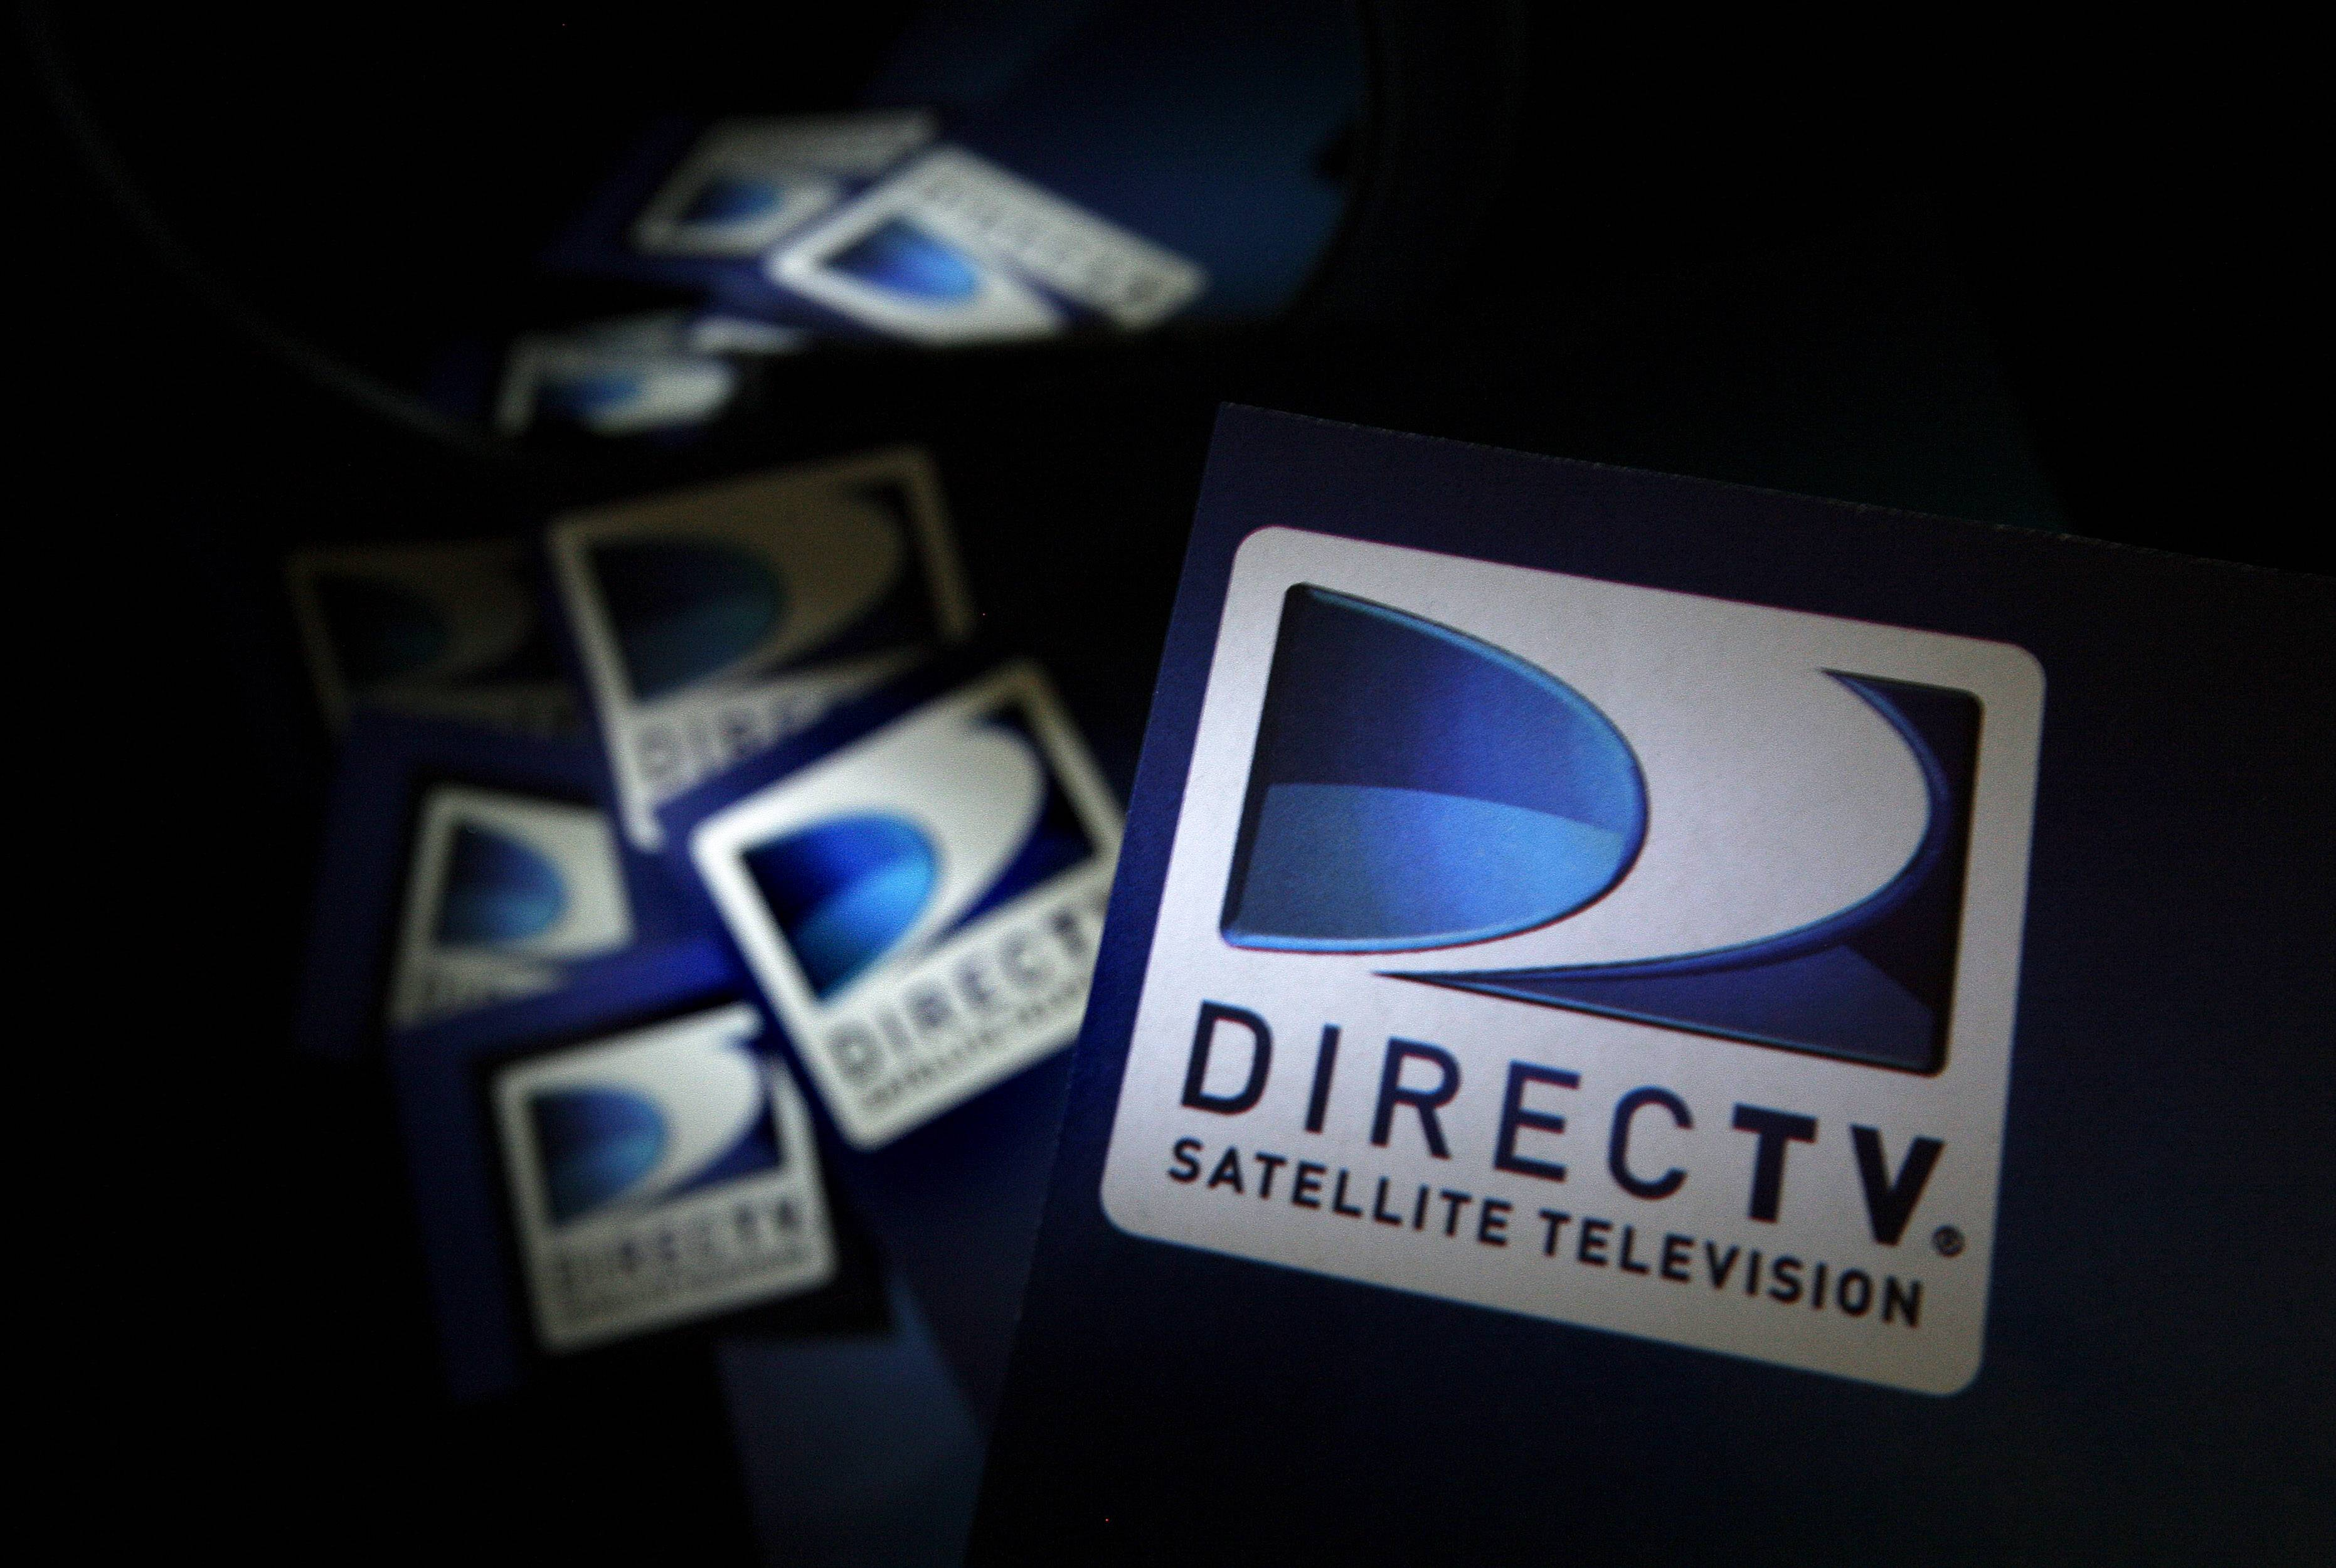 DirecTV has done a great job slashing expenses and expanding abroad, and that has helped life its 2014 earnings per share dramatically in five years.